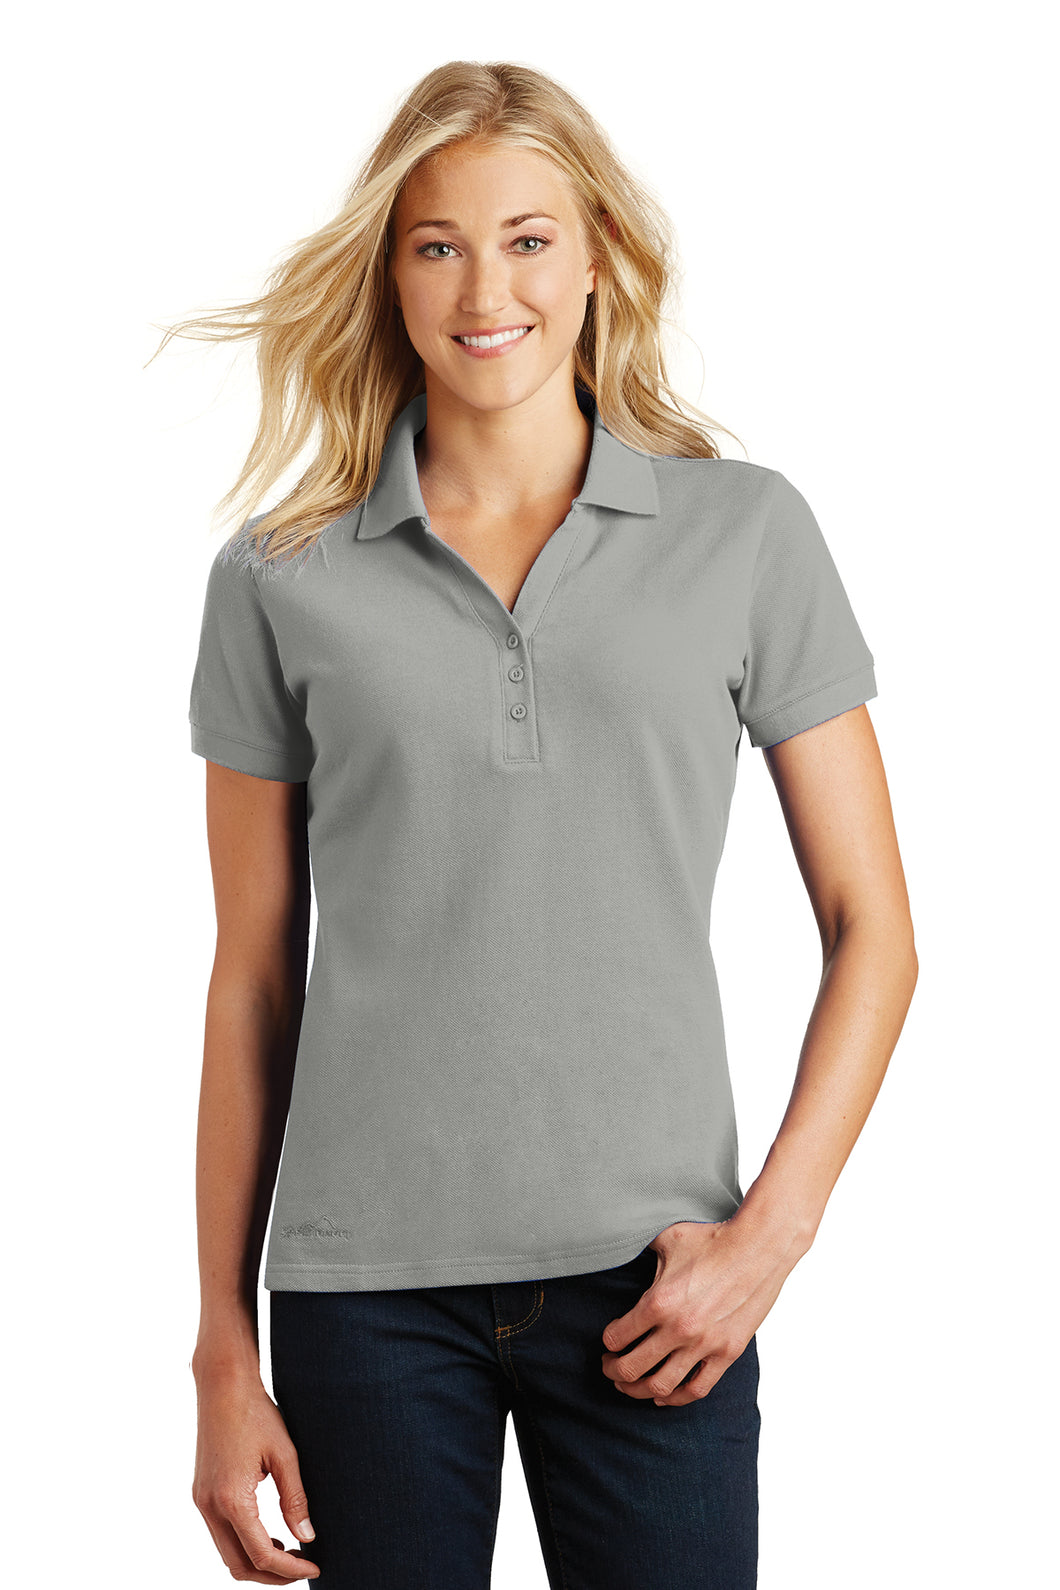 LL Lake Image (Embroidered) Women's Eddie Bauer golf polo